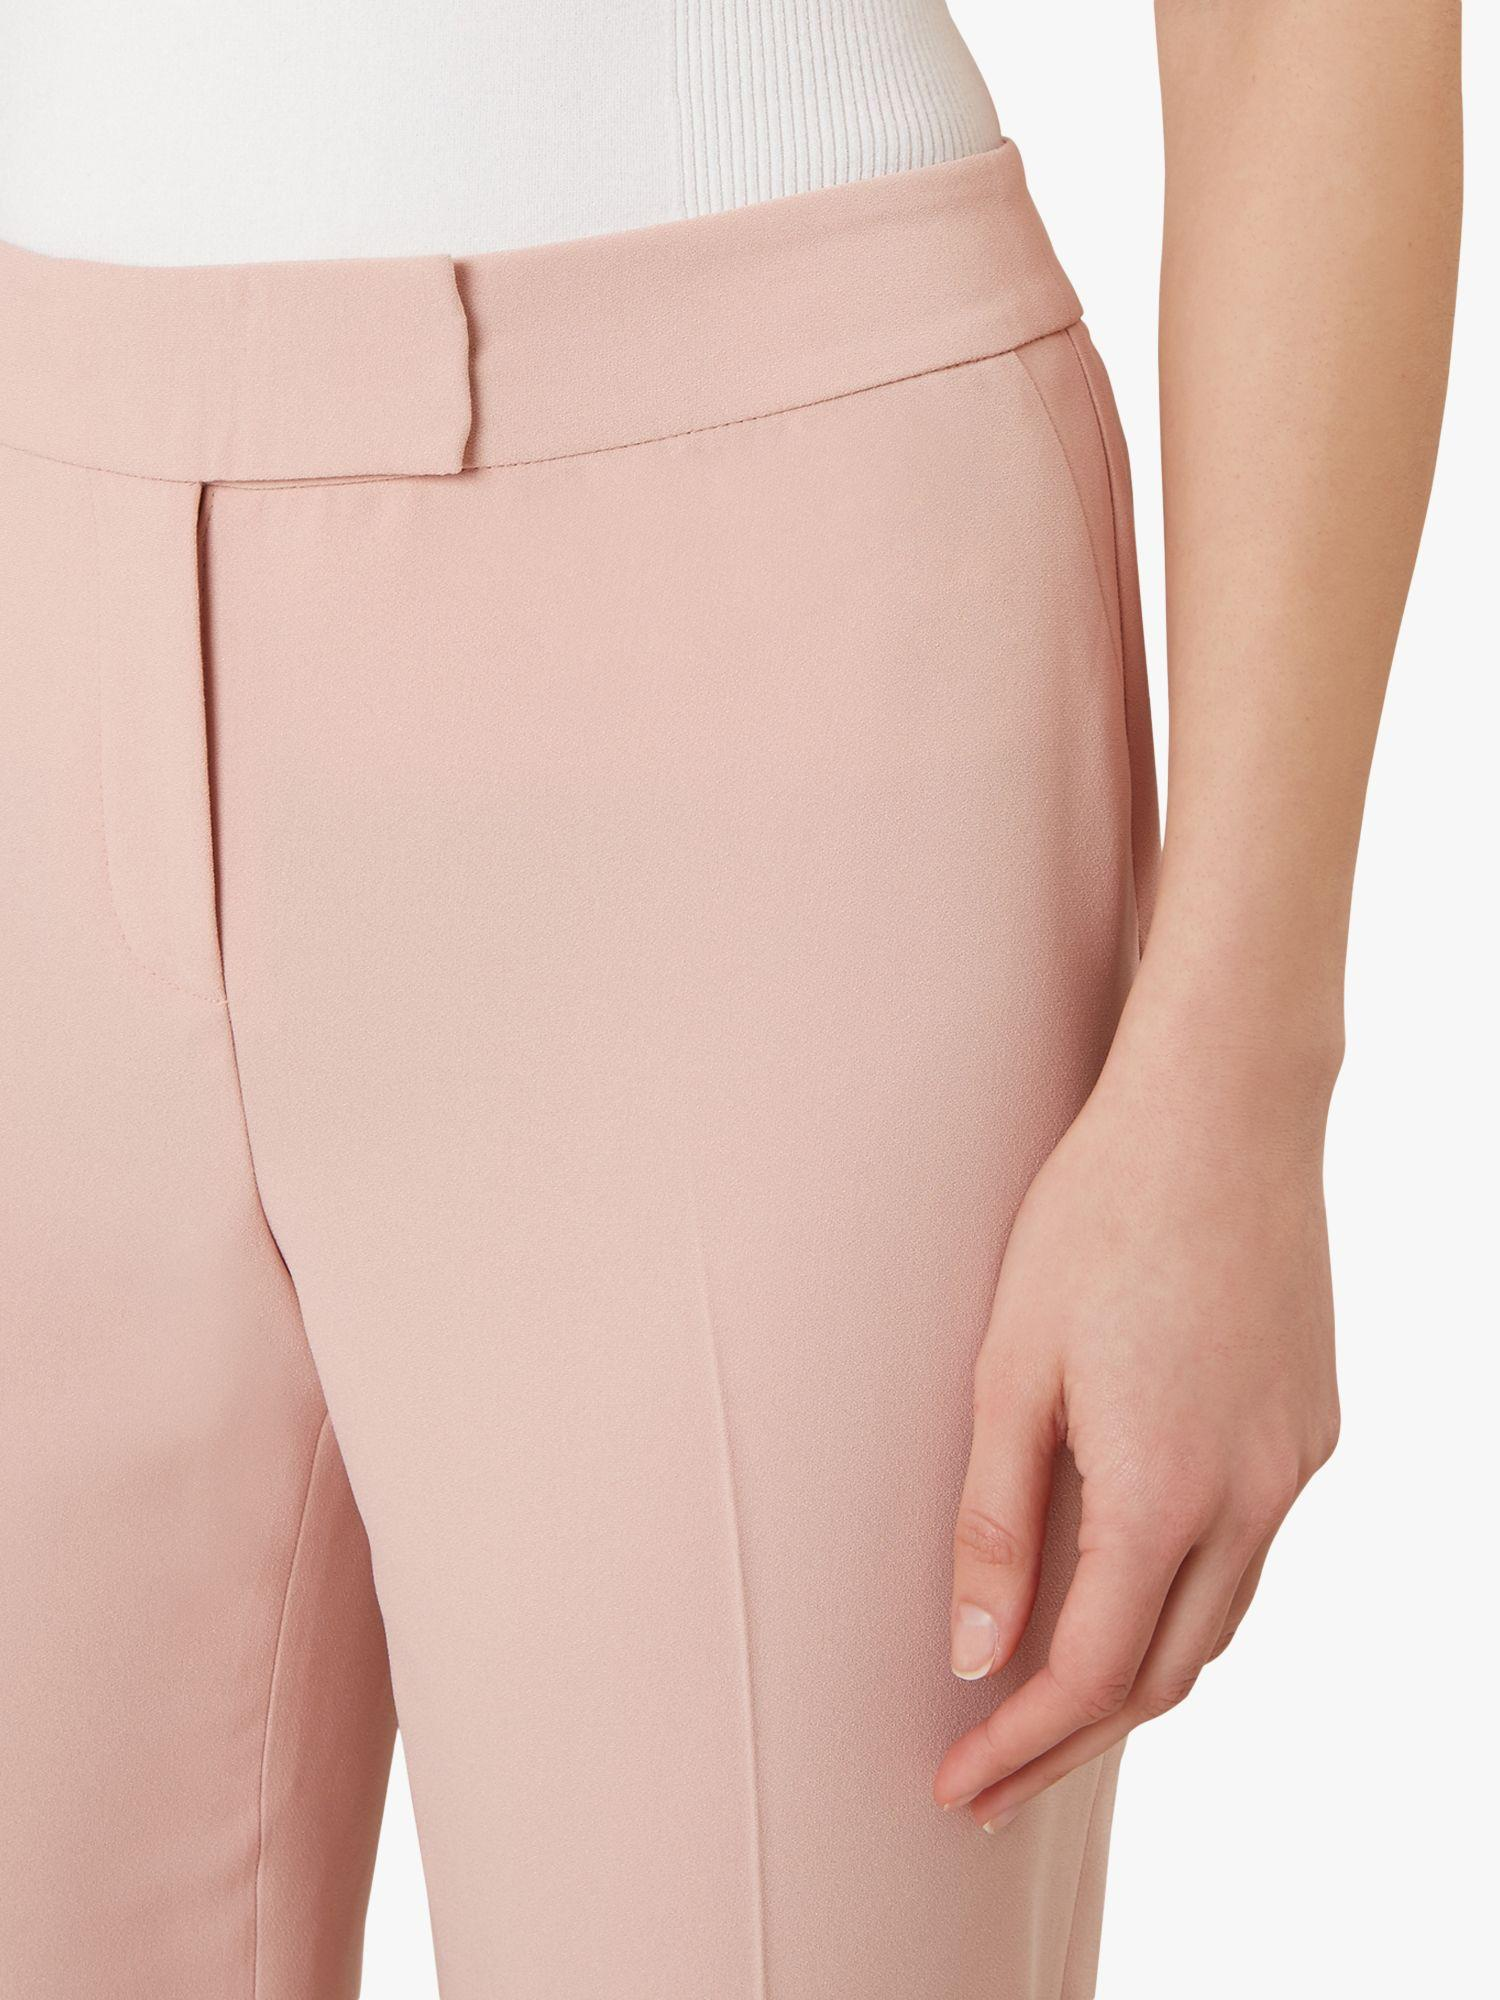 2d3251cc4803 Hobbs Adelaide Trousers in Pink - Lyst